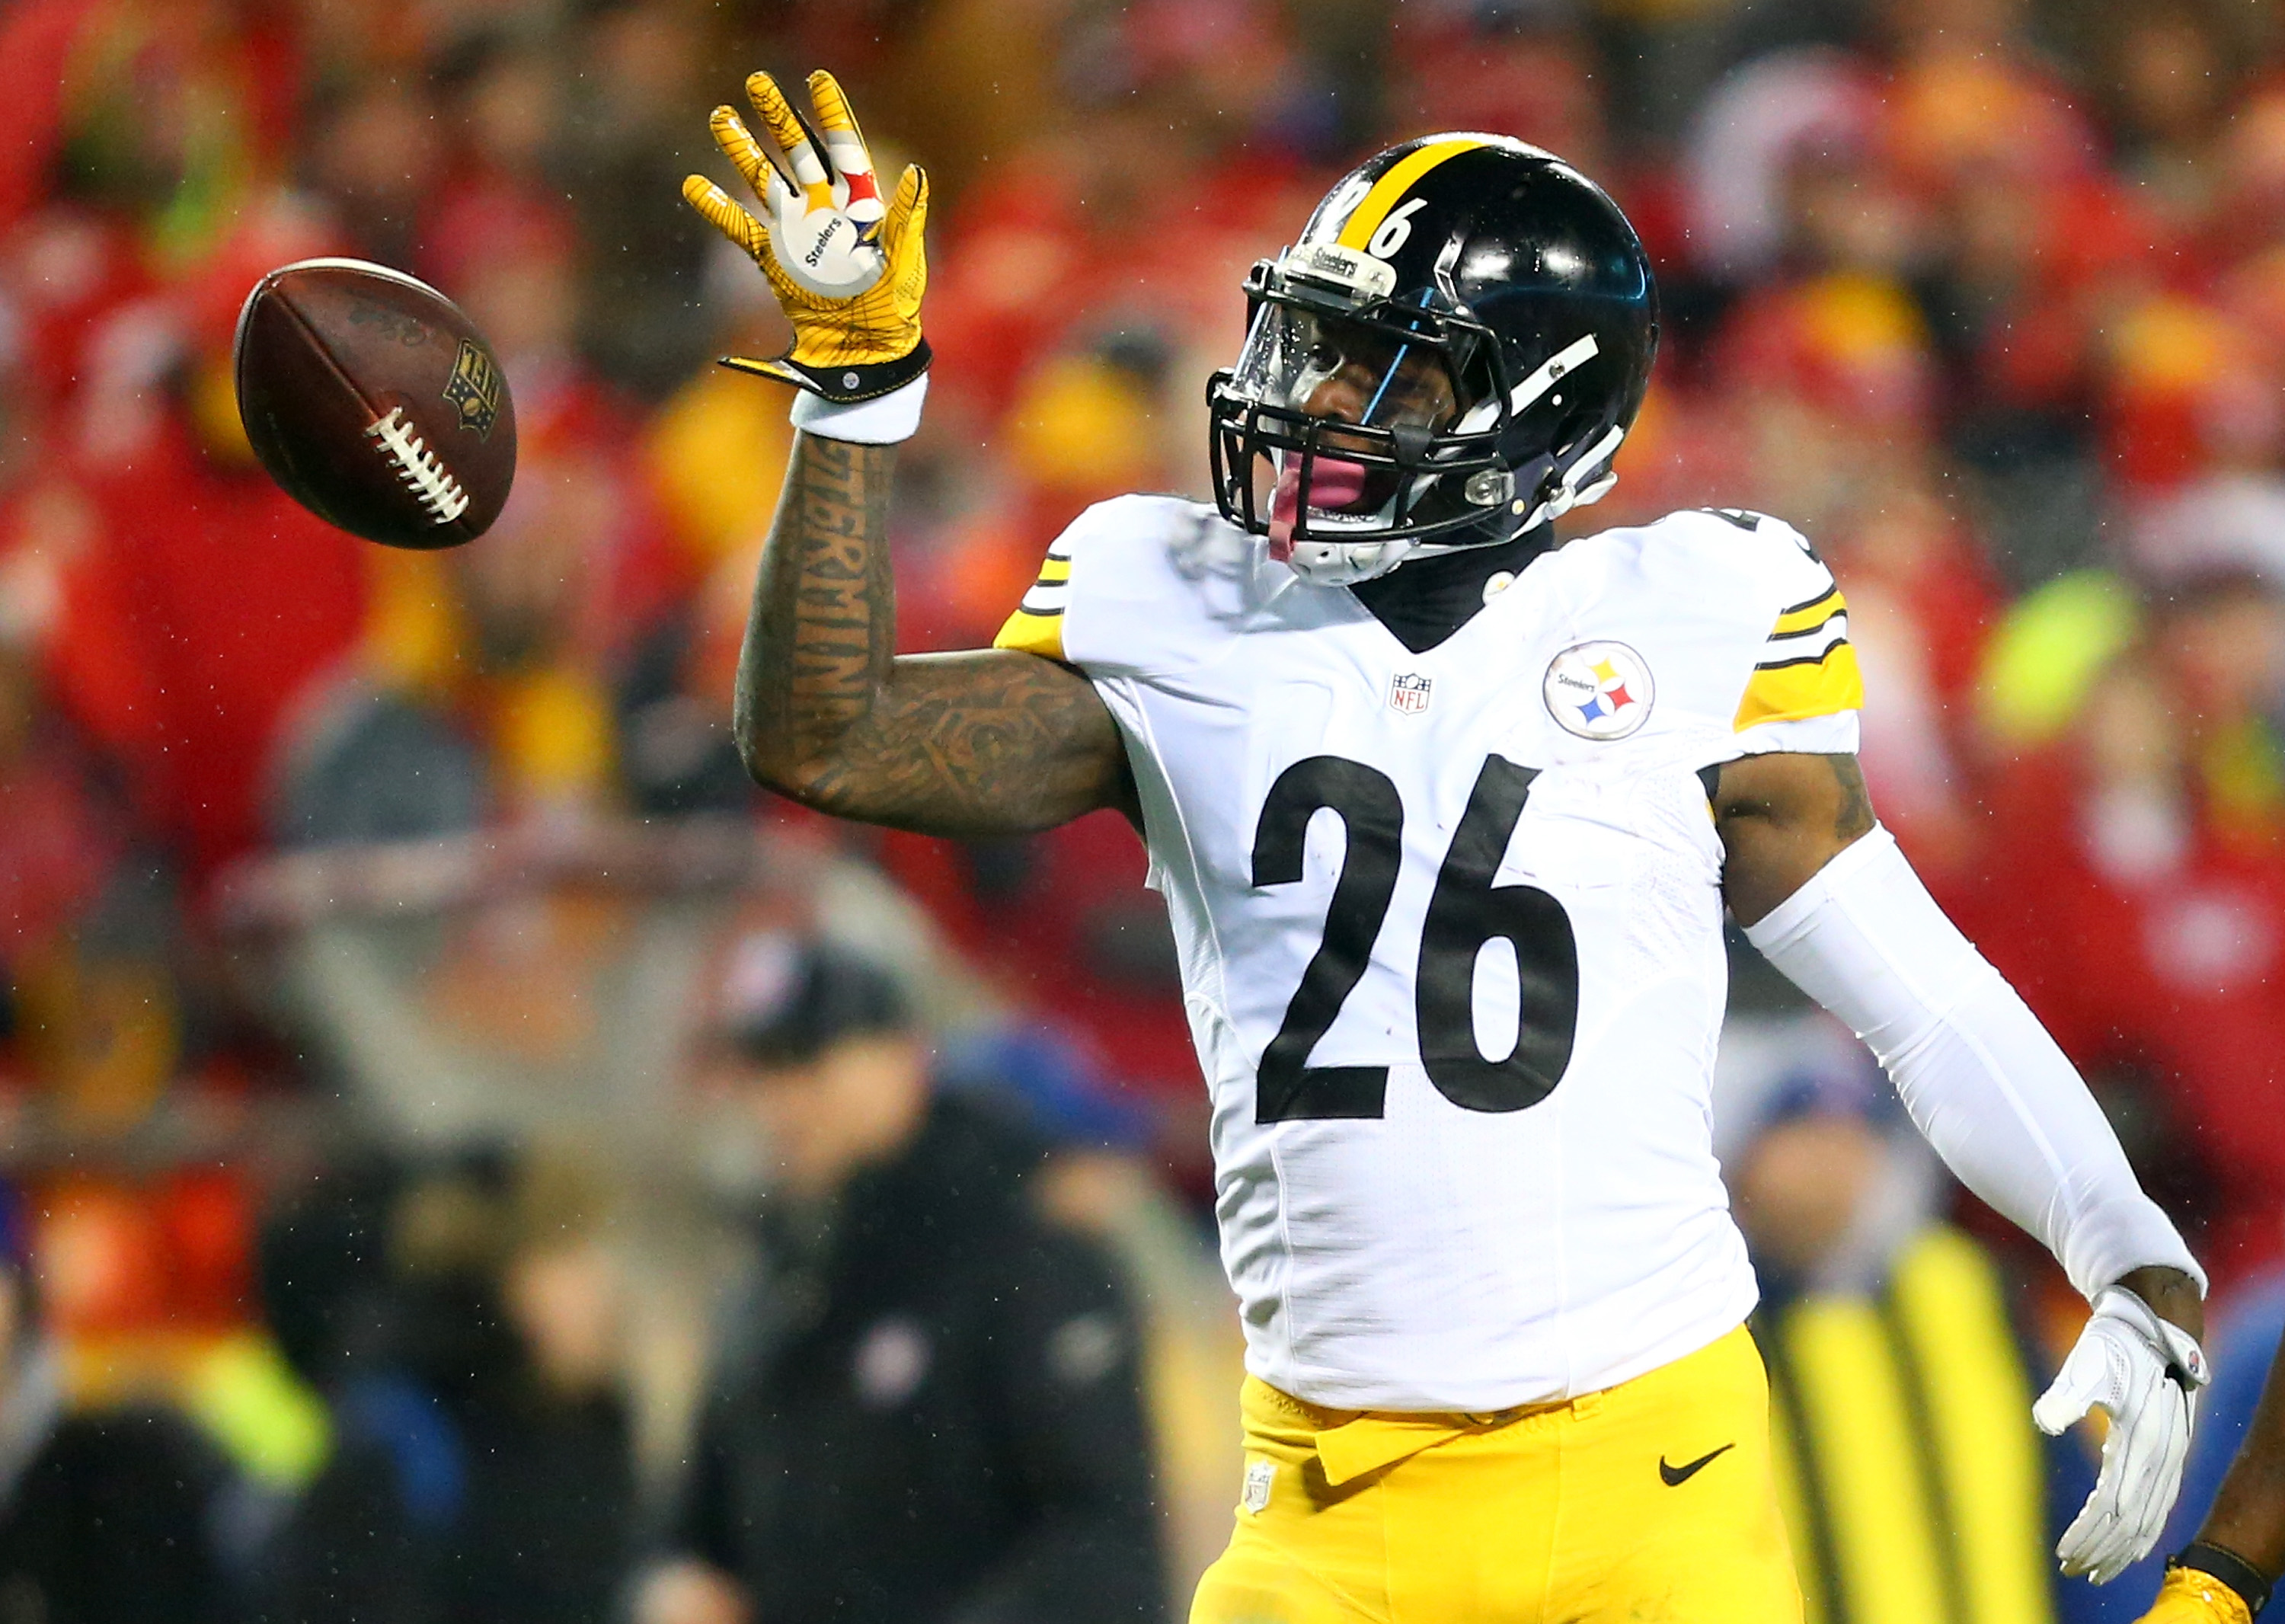 Let's talk about Le'Veon Bell